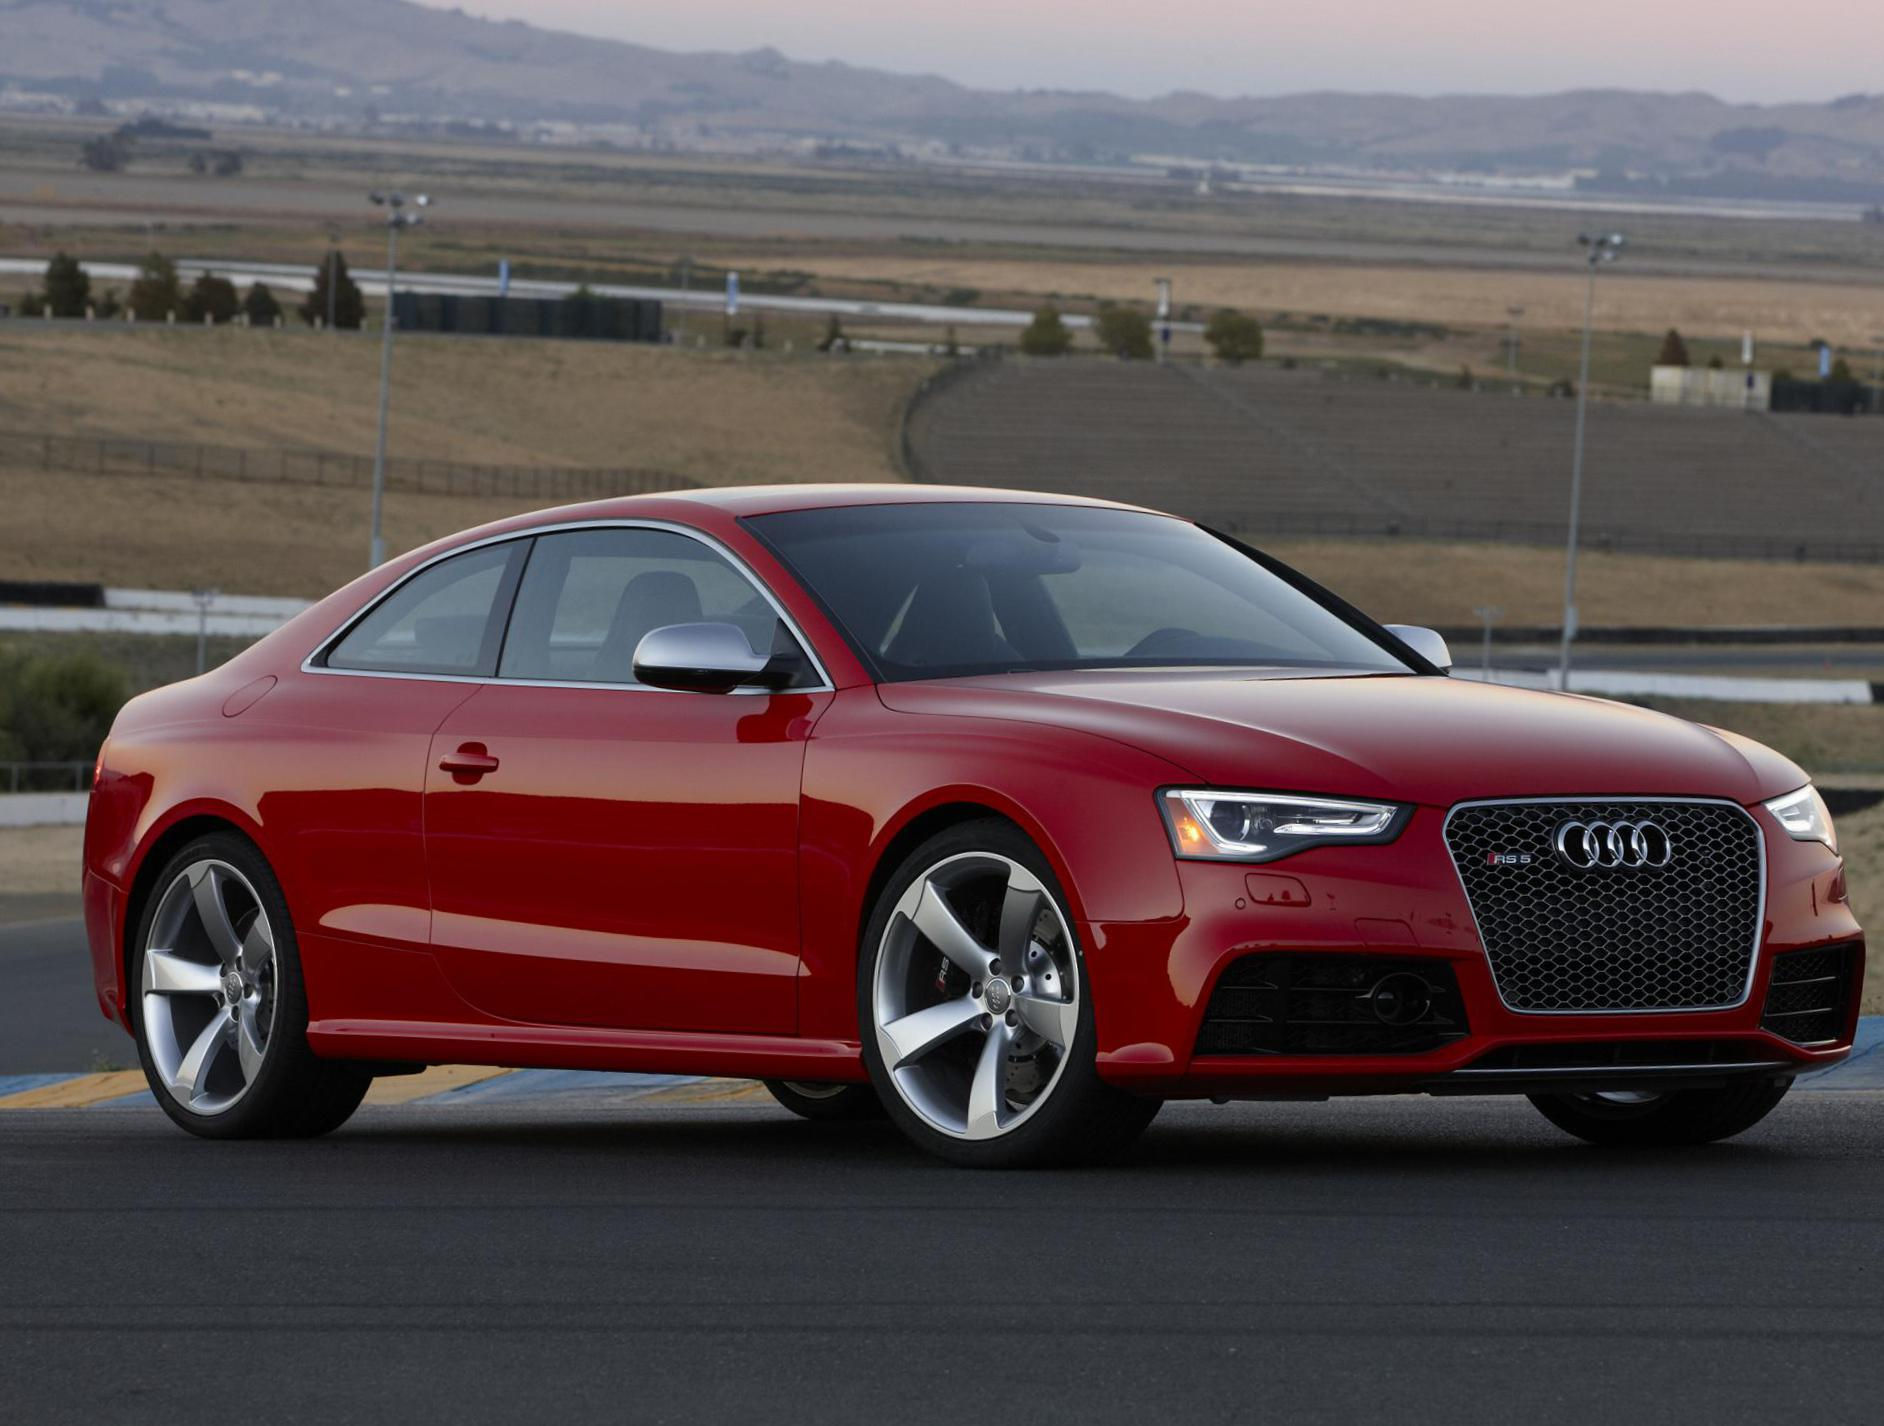 Audi RS5 Coupe Specification hatchback